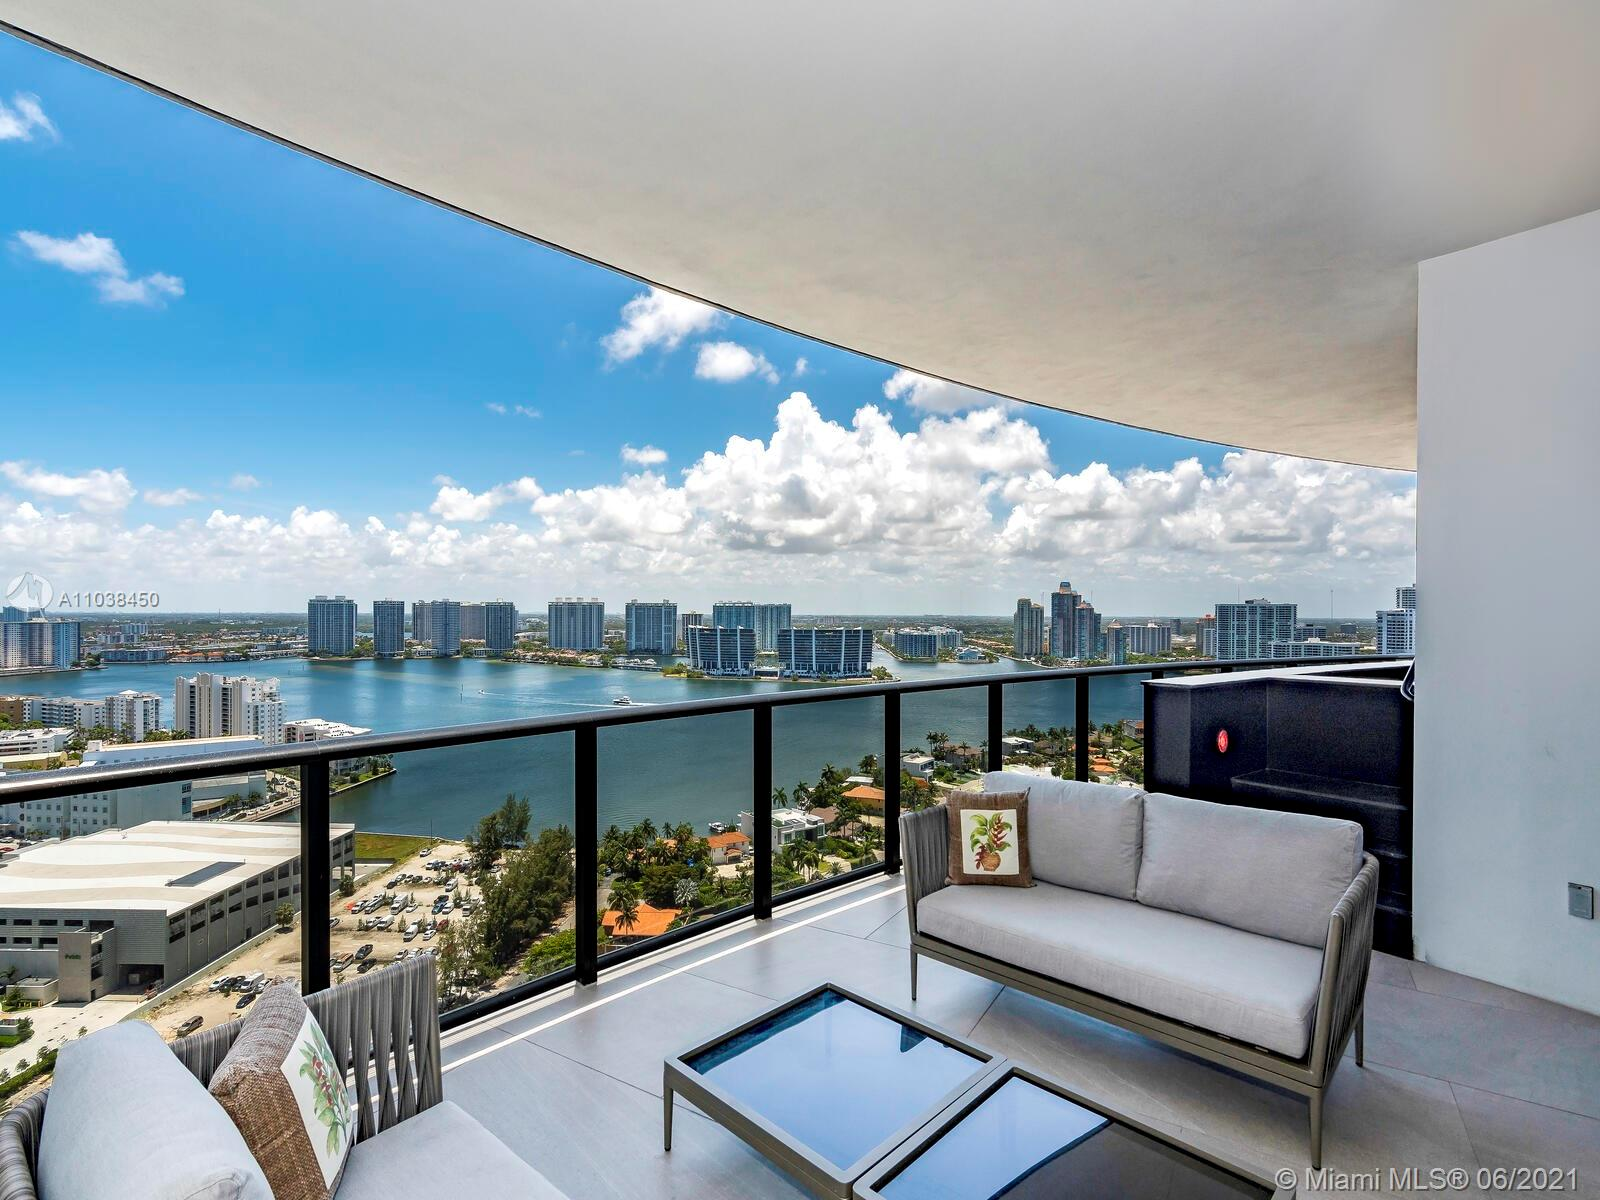 Enter by private elevator to this brand-new, luxury 4,154 SF furnished residence with an over-sized 831 SF terrace. The expansive balcony features plunge pool & outdoor summer kitchen with western exposure overlooking sunsets over the downtown skyline & partial ocean views. All 4 bedrooms offer en-suite bathrooms, large closets, and picturesque floor-to-ceiling glass walls. Den can be converted into a 5th bedroom or entertainment room. High-end finishes and state-of-the-art Poggenpohl kitchen with Miele appliances. Porsche offers 5 star amenities: full service restaurant & bar, theater, yoga + fitness studio, spa, steam room + sauna, virtual car & golf simulator, pool, and is situated 200 ft on the Ocean with beach service. Unit is current rented and will be available on June 1st.